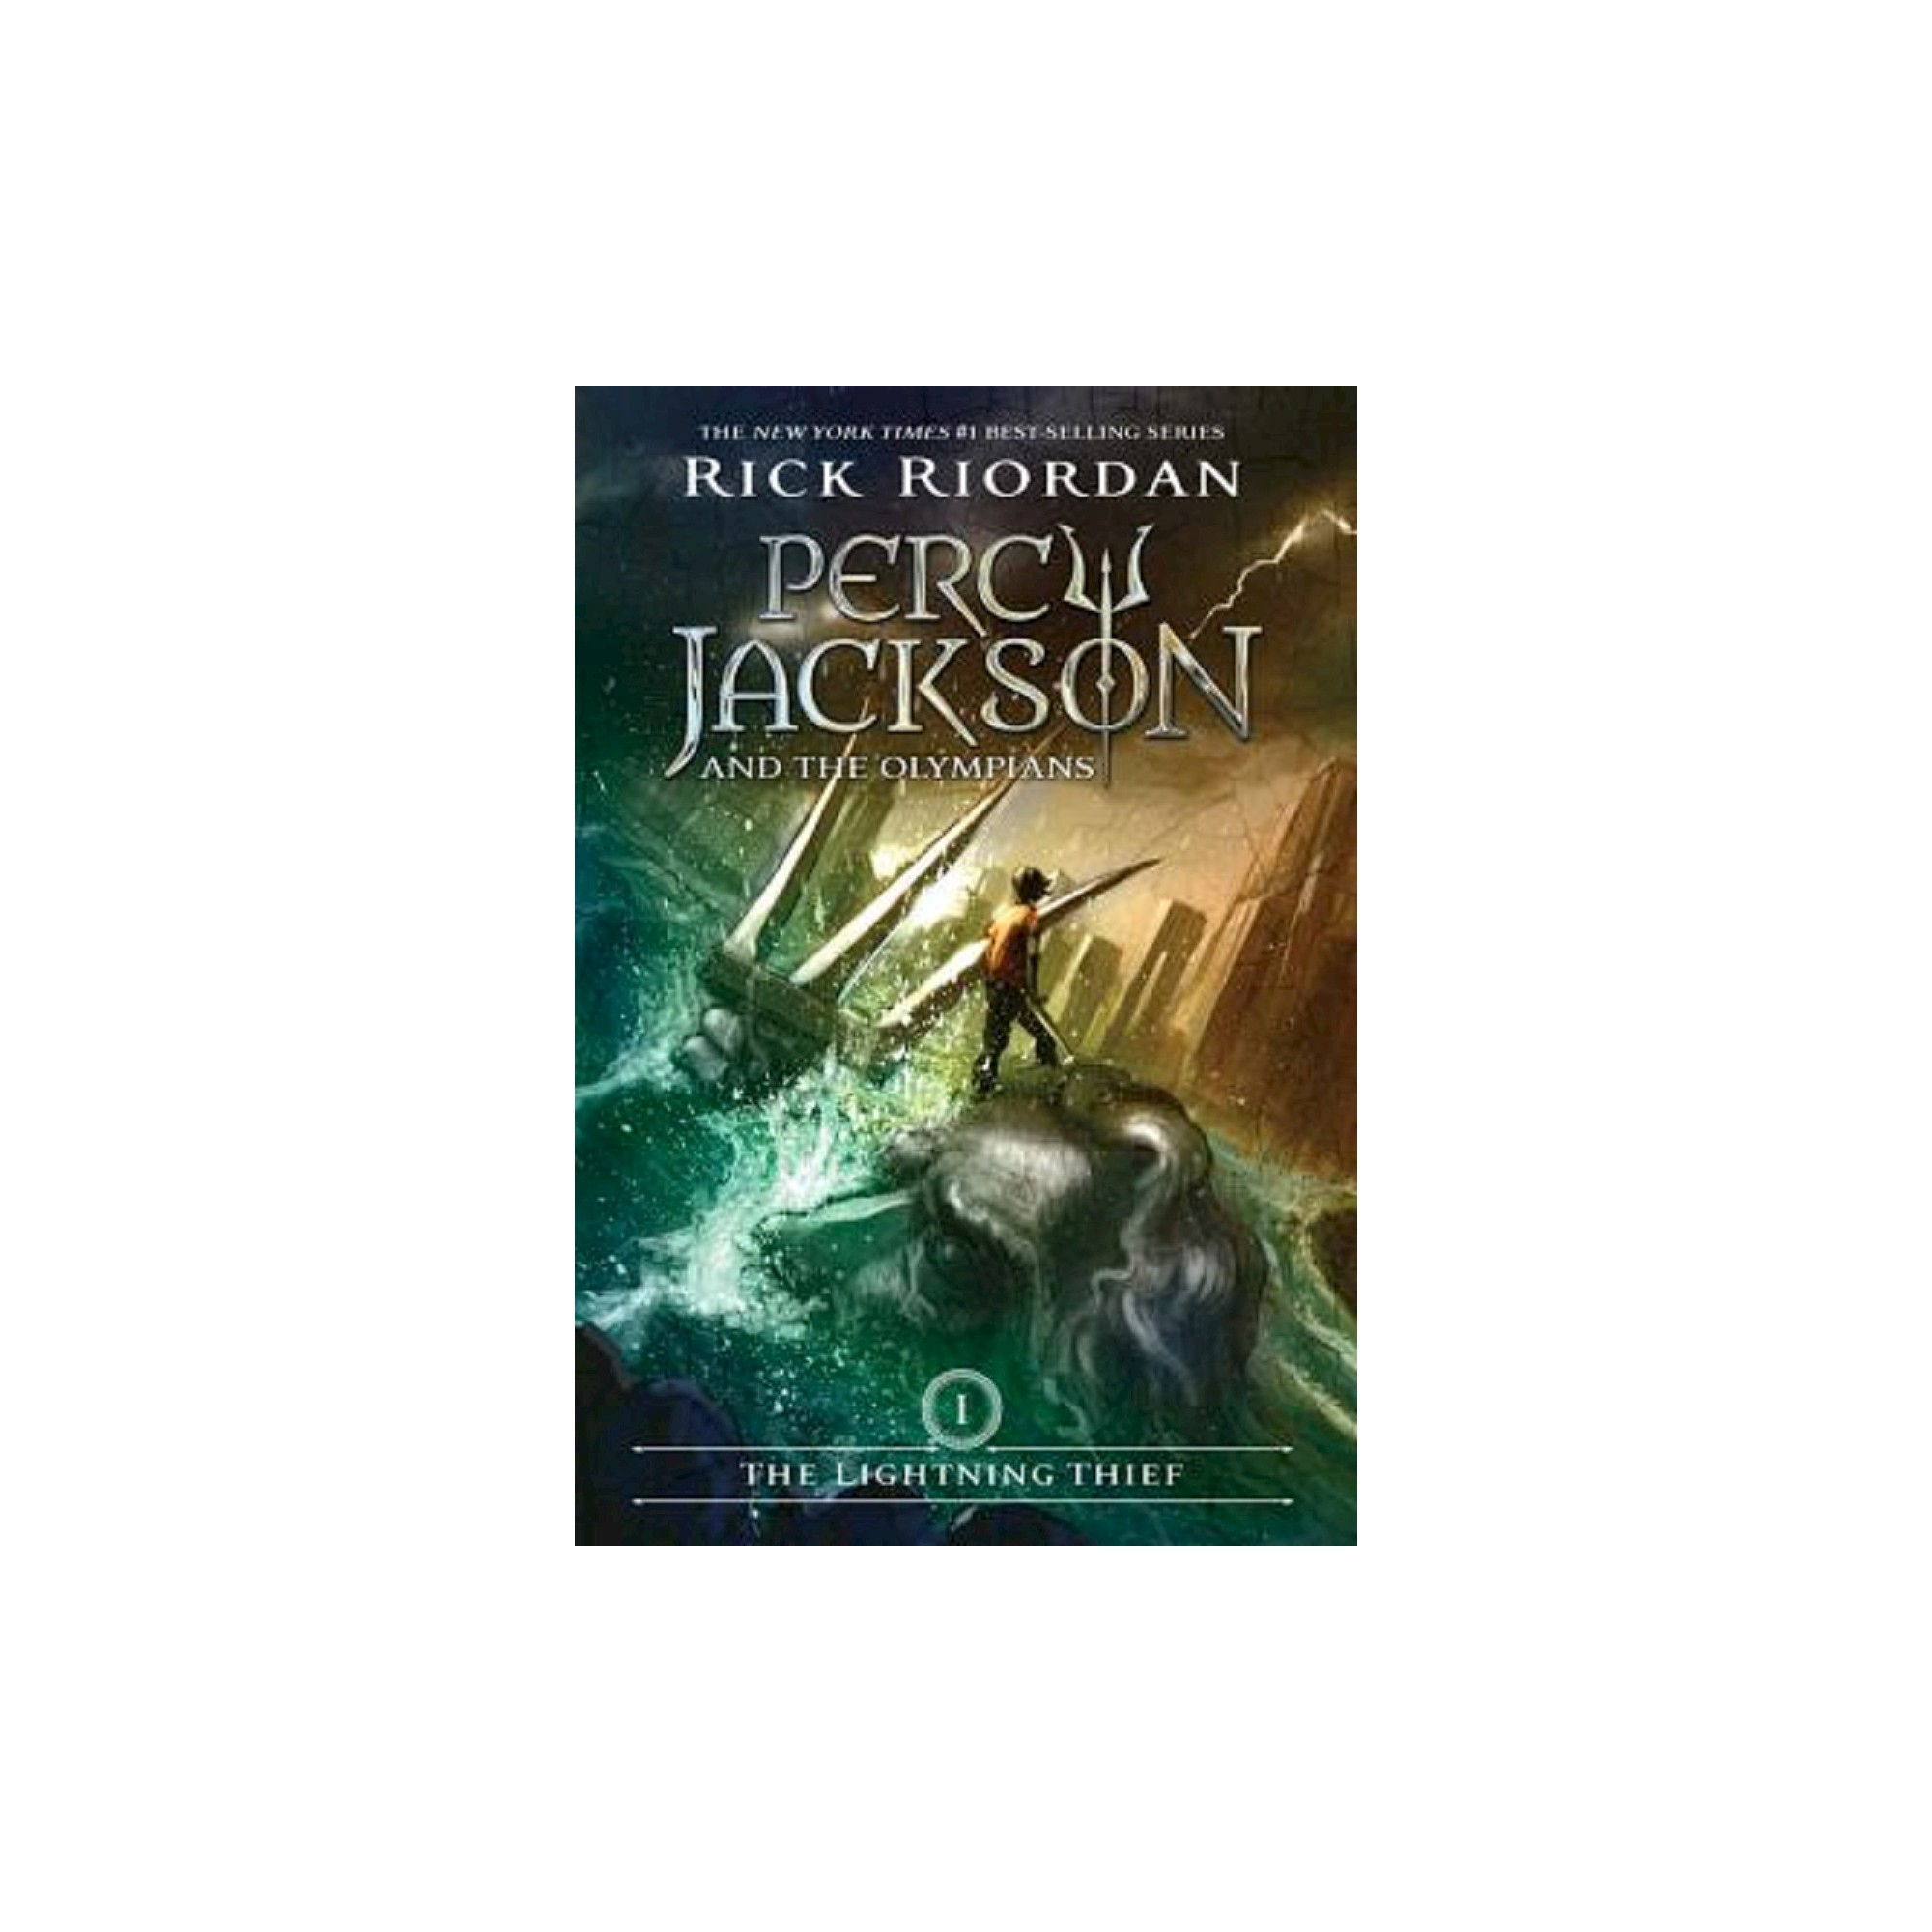 The Lightning Thief Percy Jackson And The Olympians